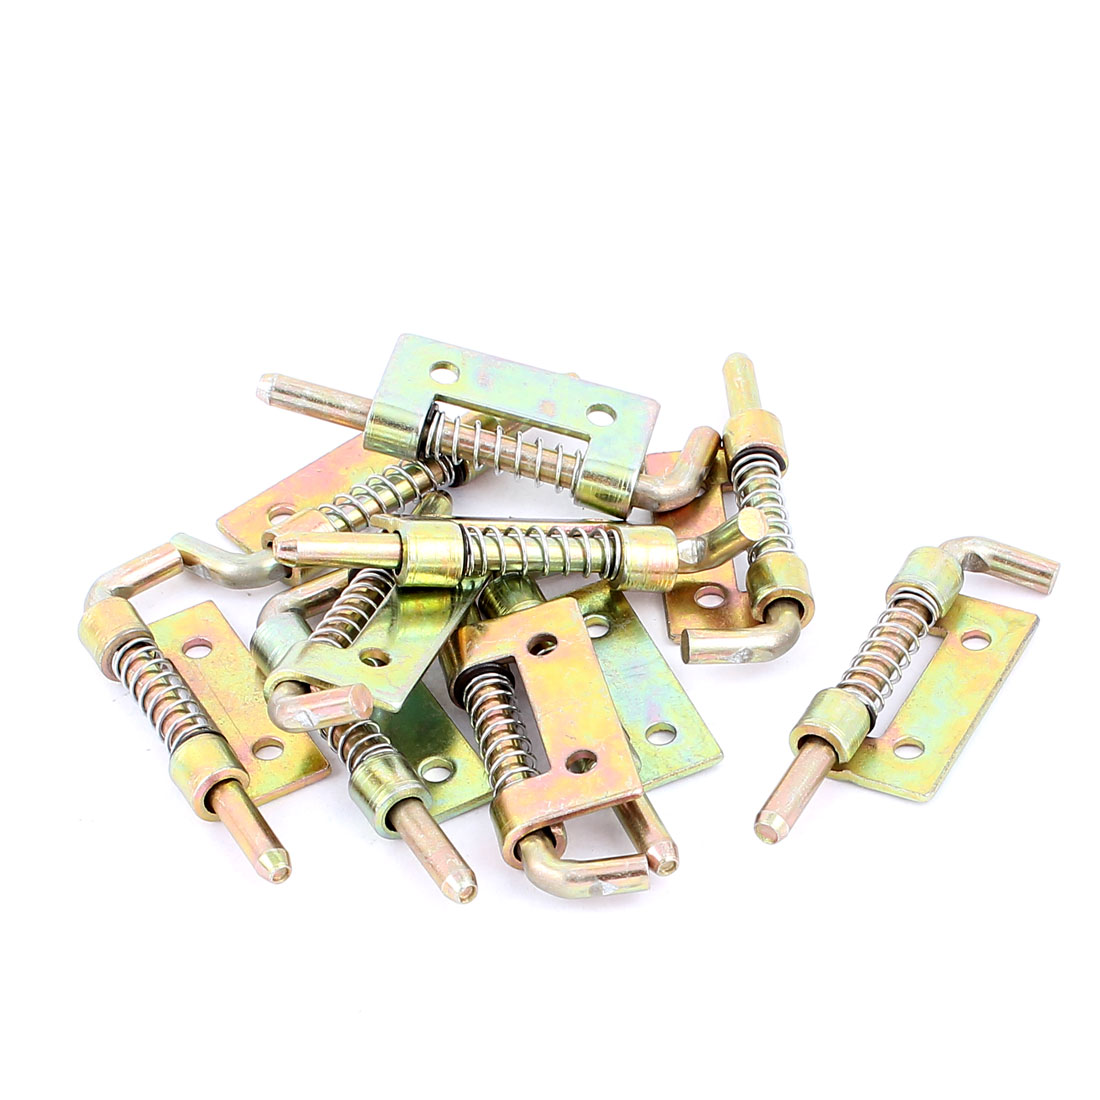 Spring Loaded Left Hand Brass Tone Metal Barrel Bolt Latch Hardware 10pcs